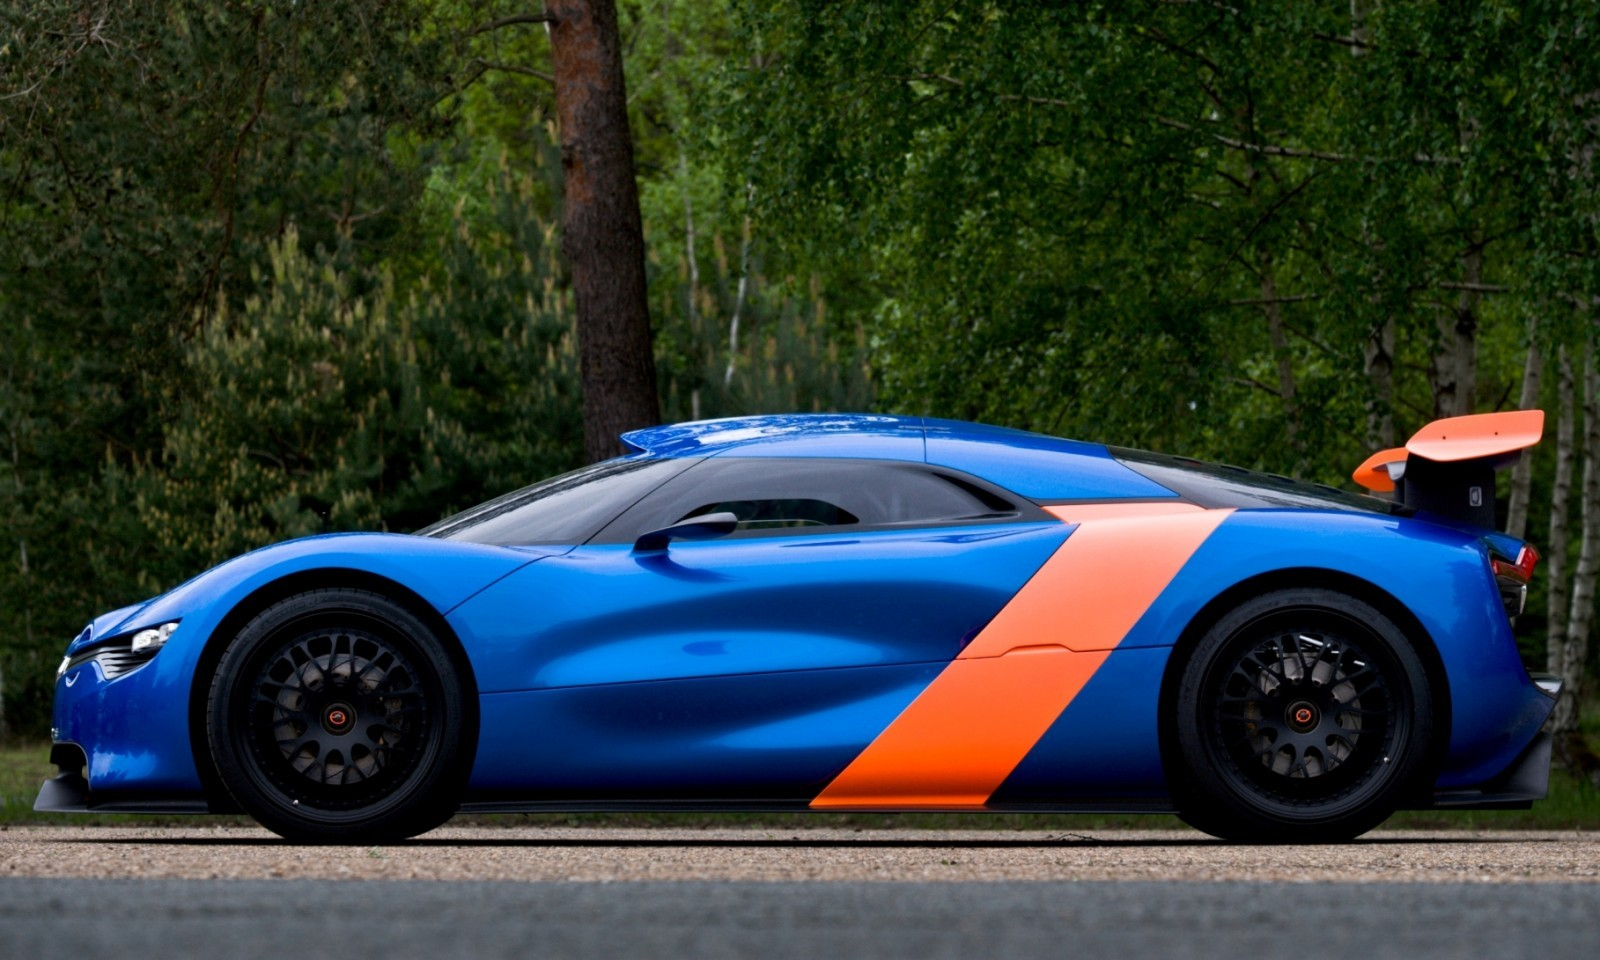 Concept Flashback - 2012 Renault Alpine A110-50 A Blend of M64 and A110 Berlinette 51